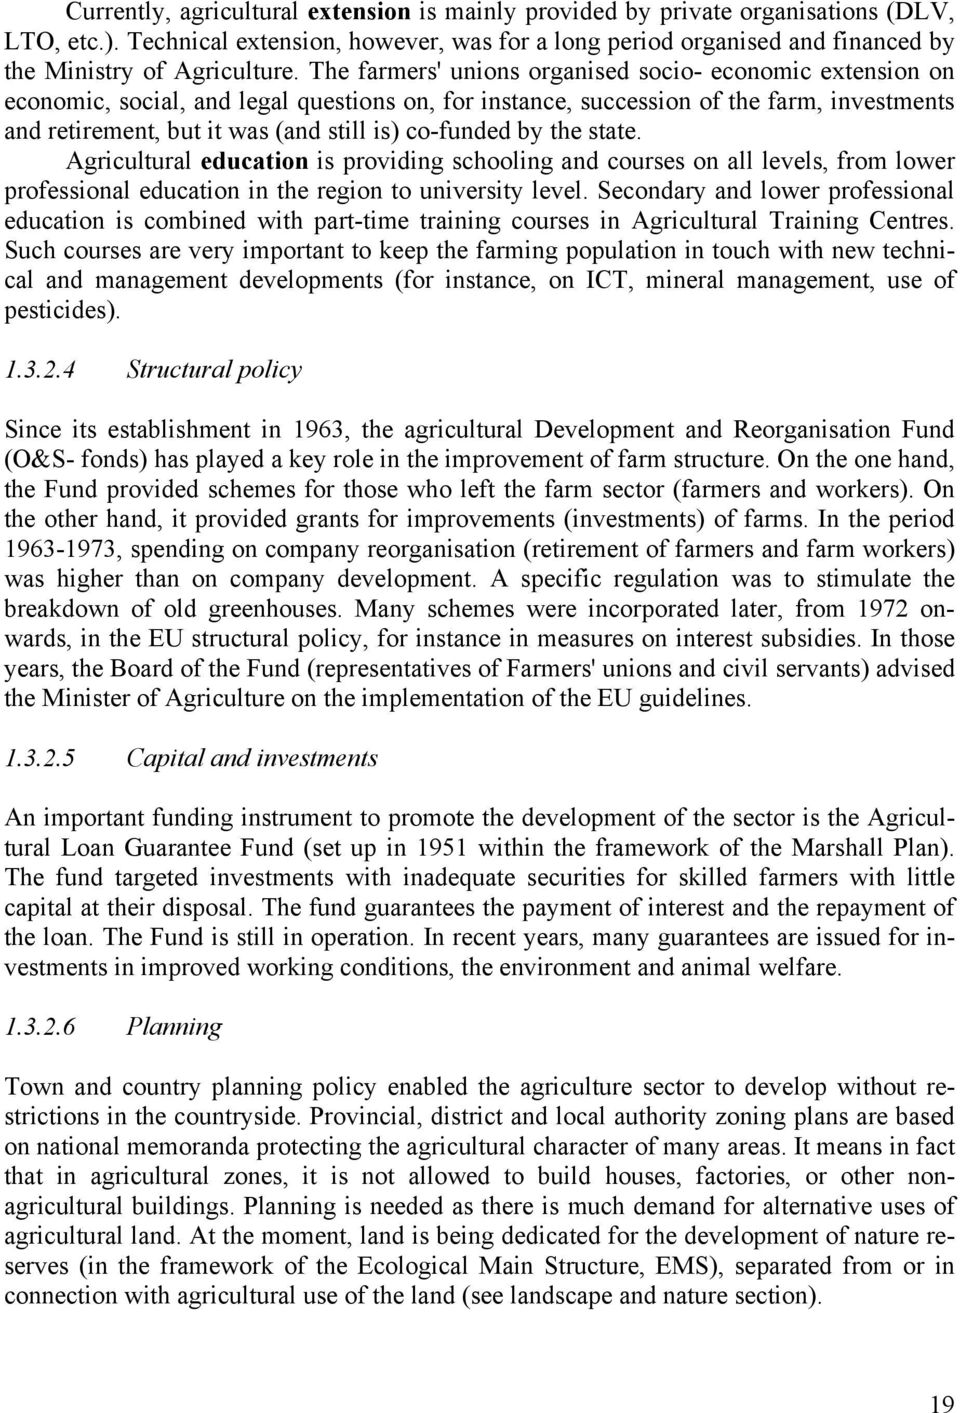 The farmers' unions organised socio- economic extension on economic, social, and legal questions on, for instance, succession of the farm, investments and retirement, but it was (and still is)